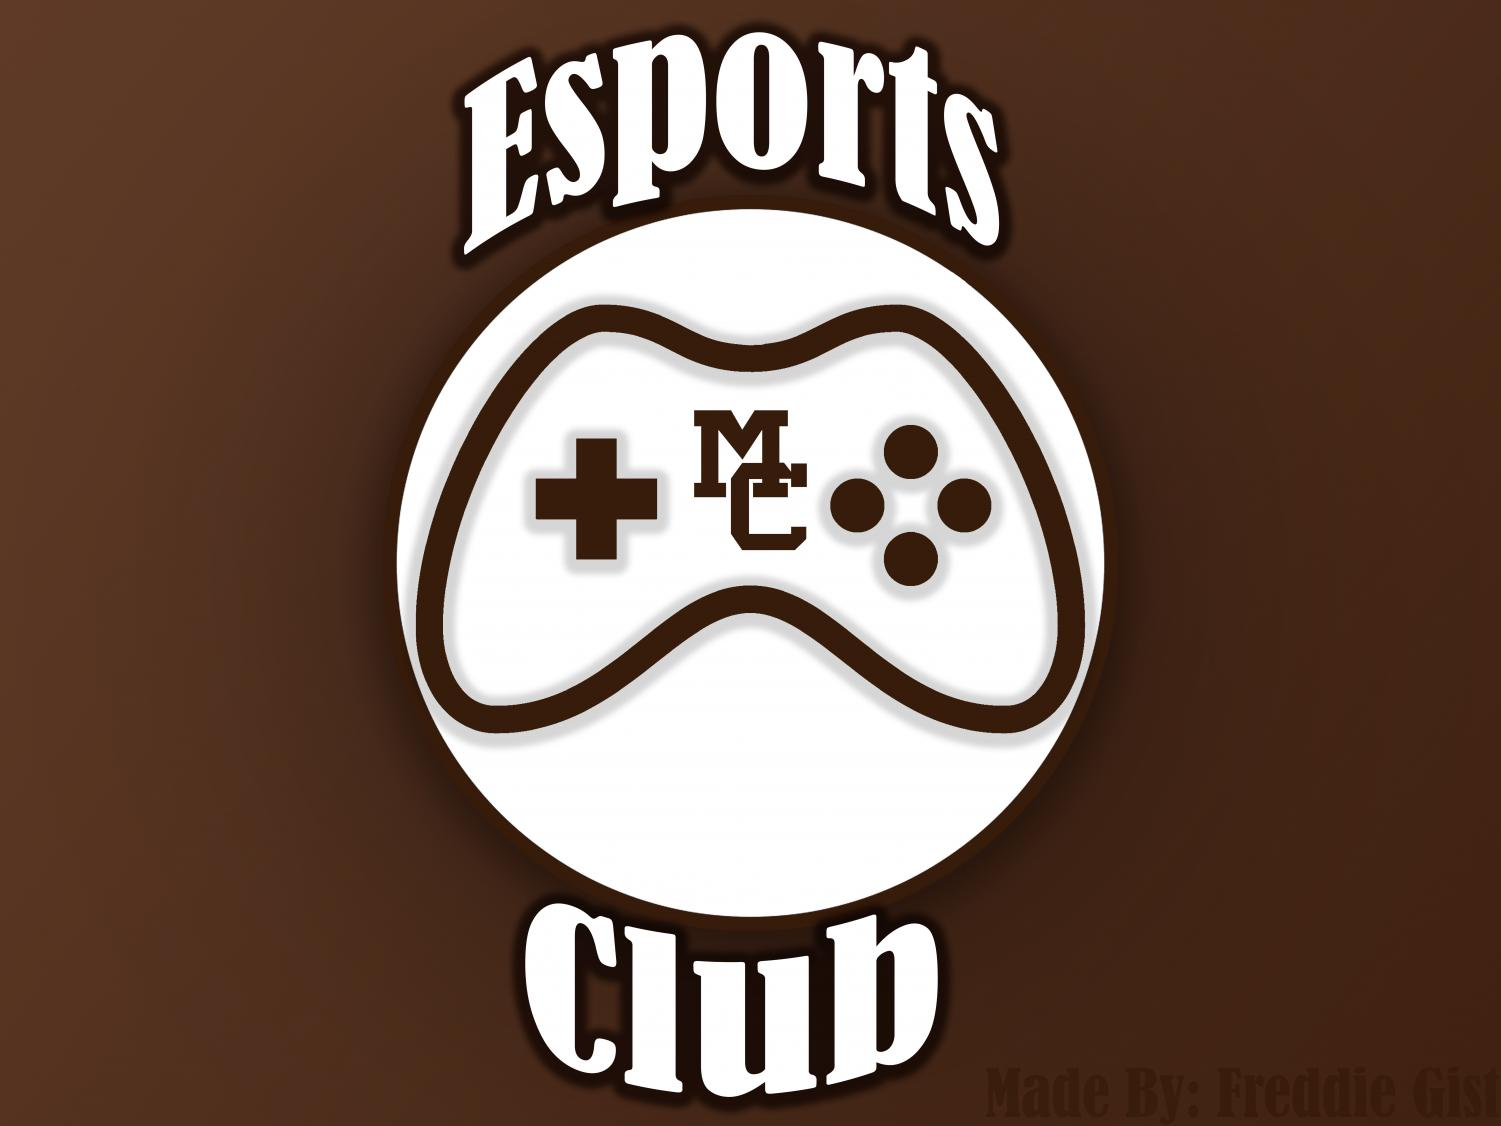 The E-sports club is ready to face it